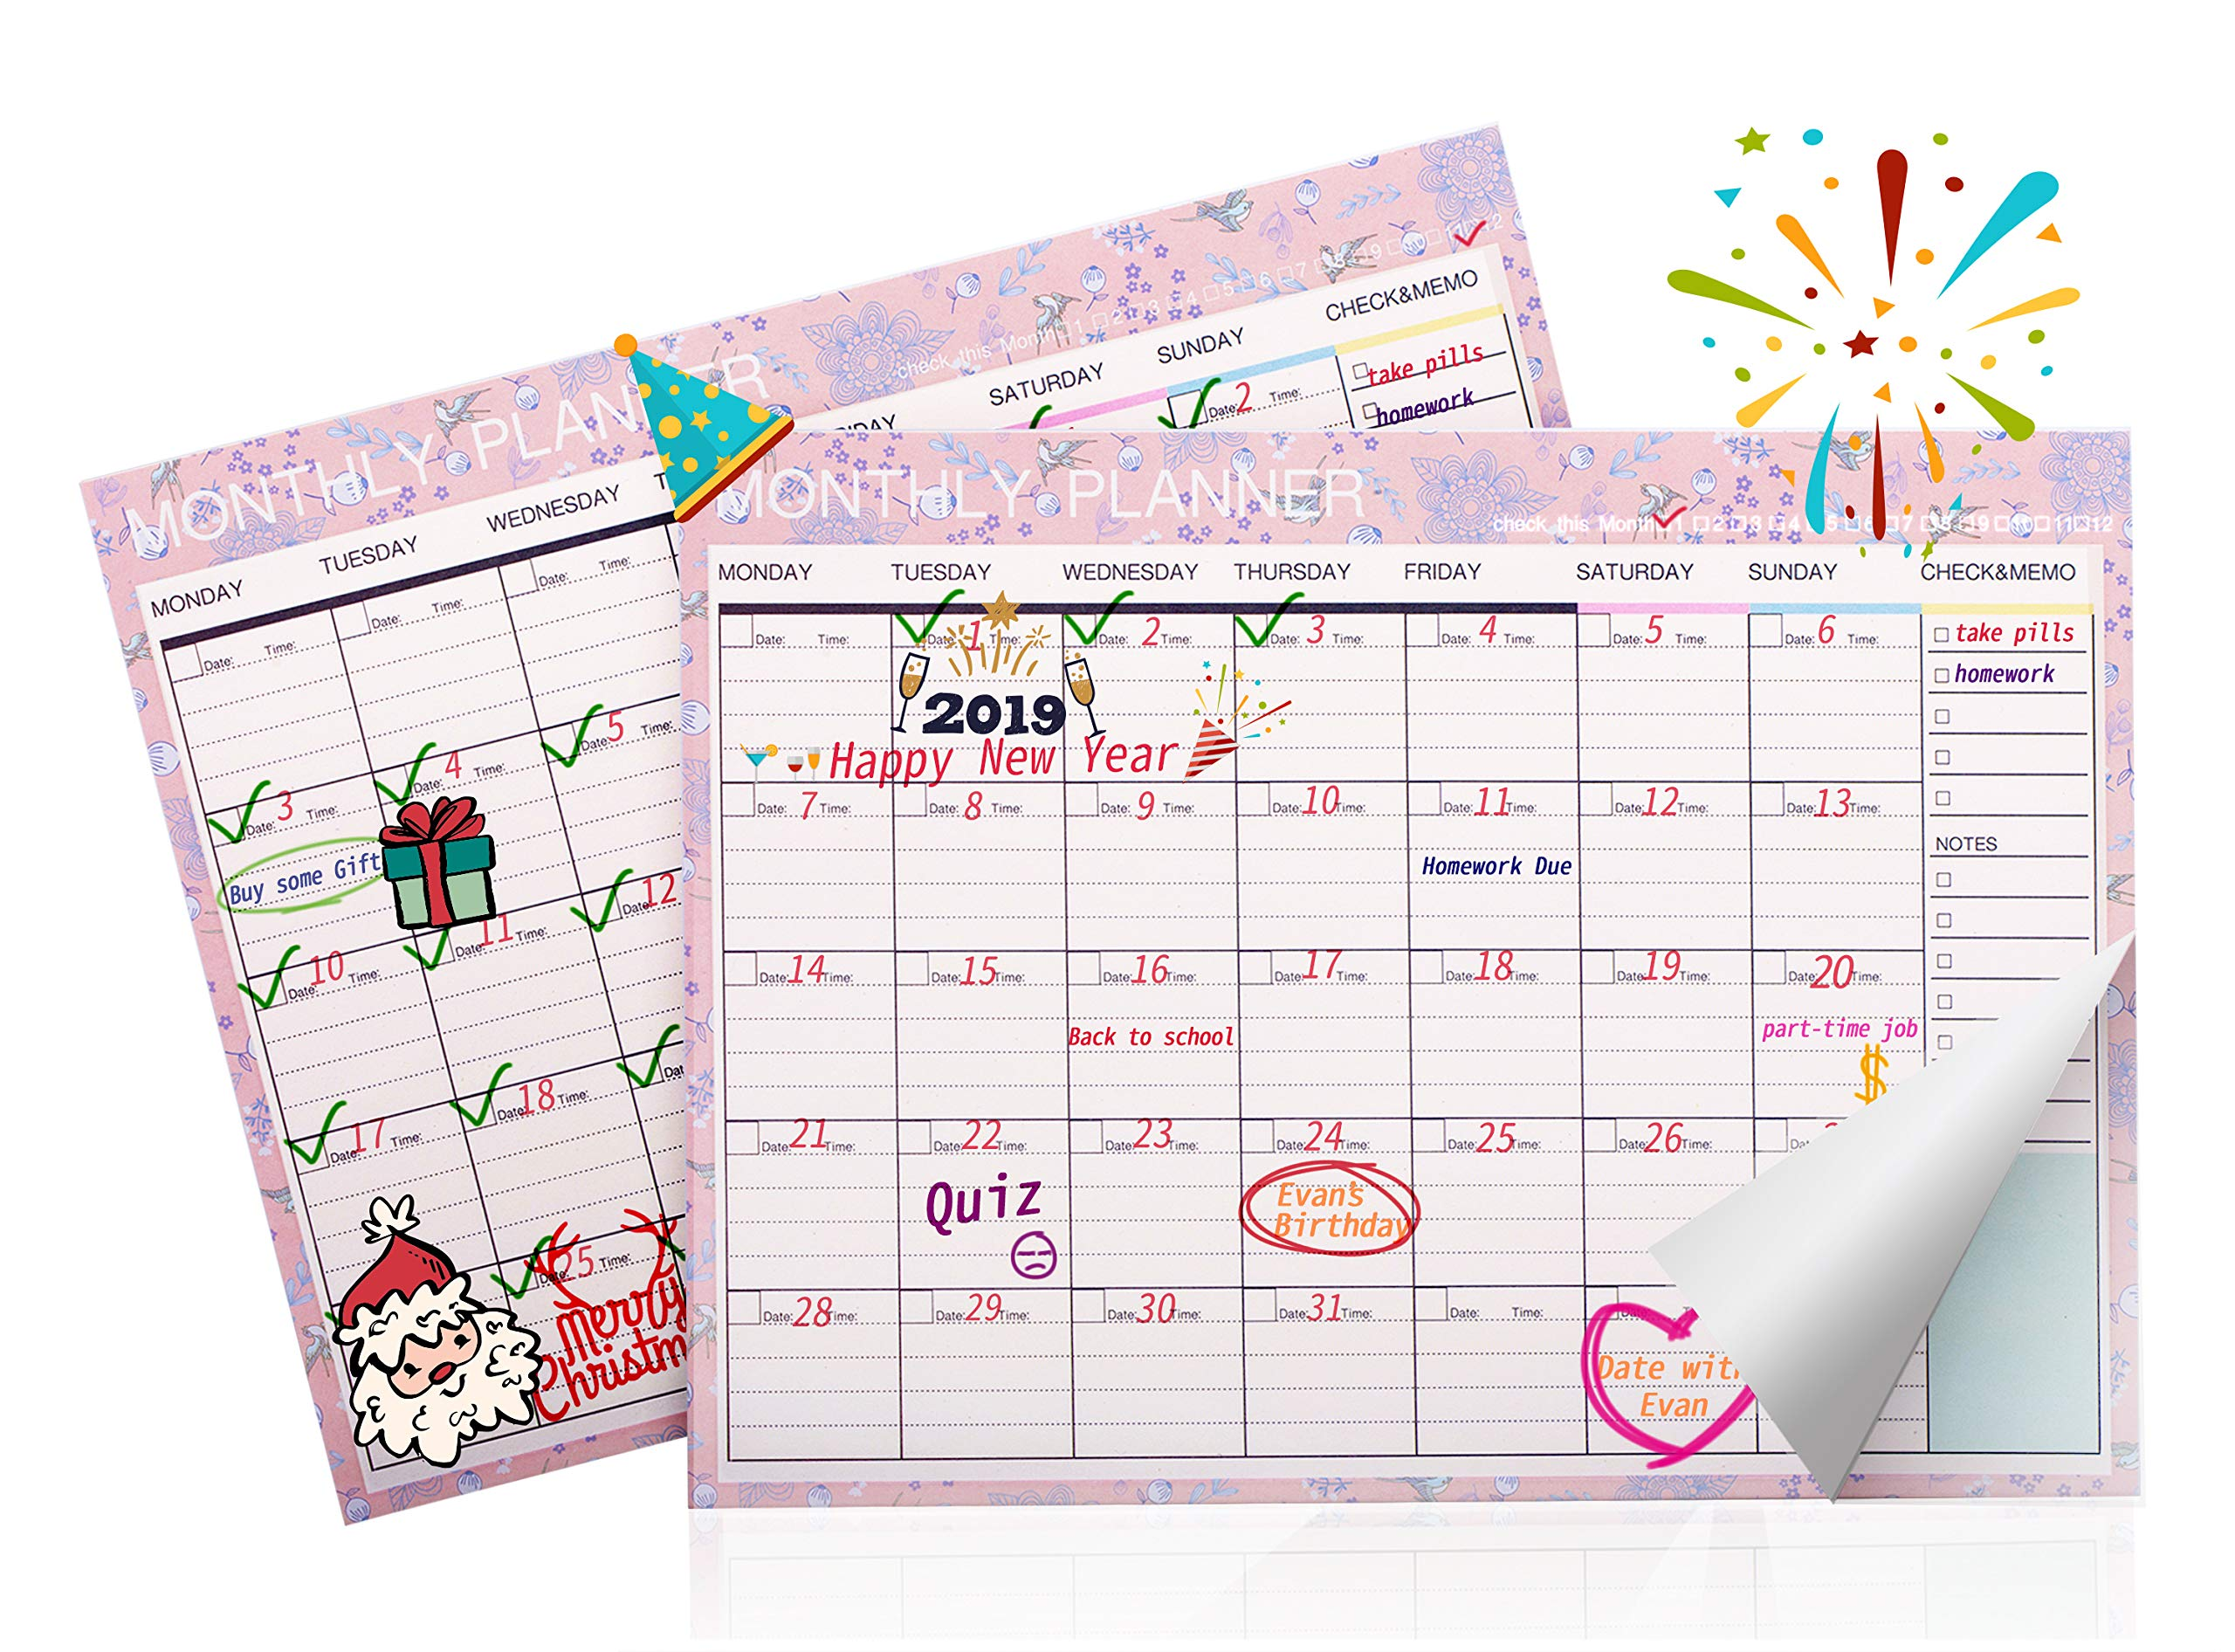 Lazyaunti Monthly Calendar Planner Undated 2018-2019 Tearable Deak Pad Calendar Memo Pad, Notepad Checklist for School, Classroom, Home Use (Pink)